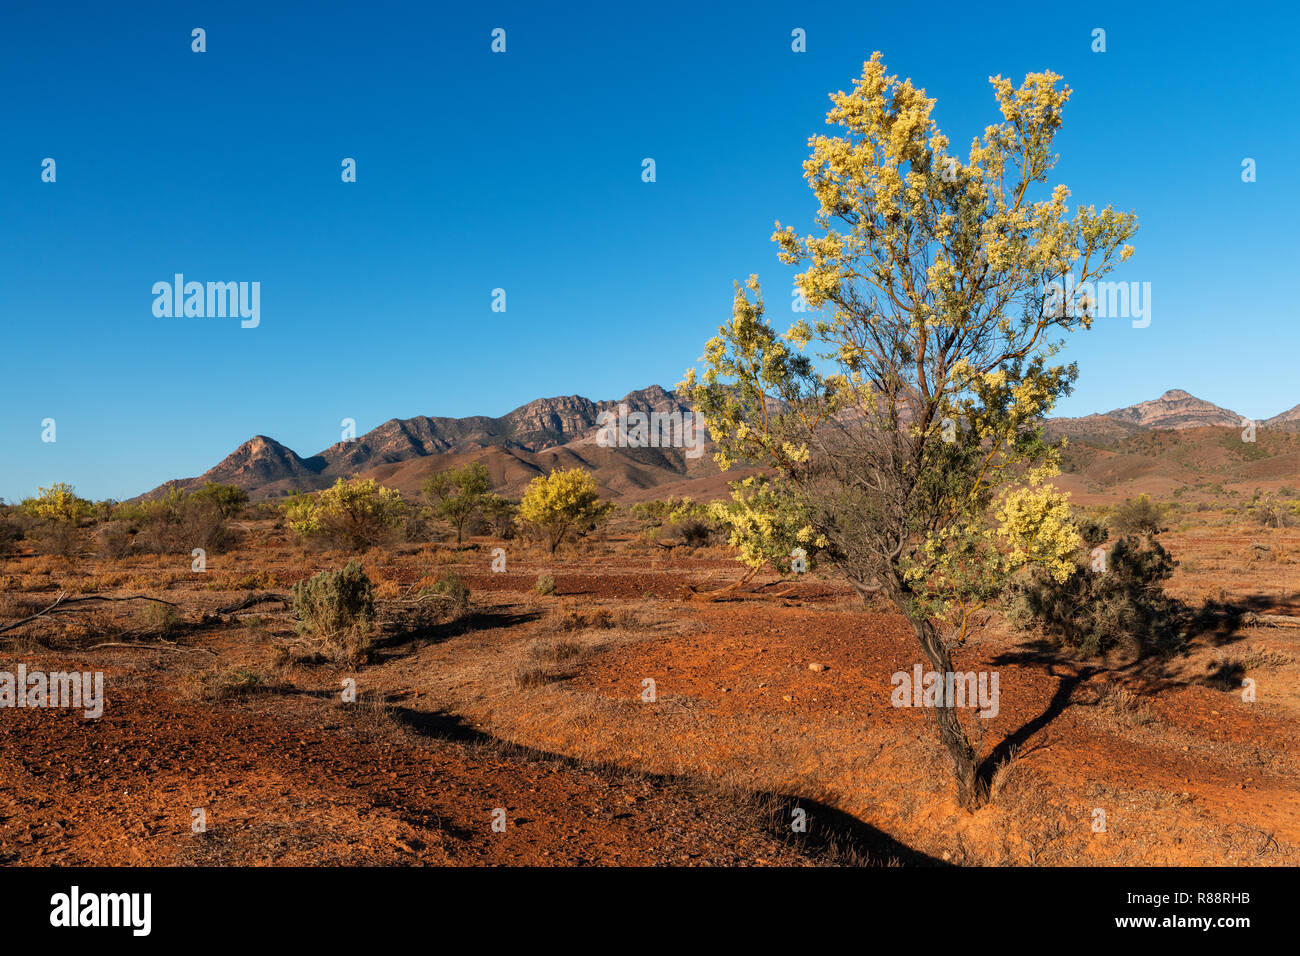 Blooming Wattle Tree in the arid landscapes of the Flinders Ranges. - Stock Image